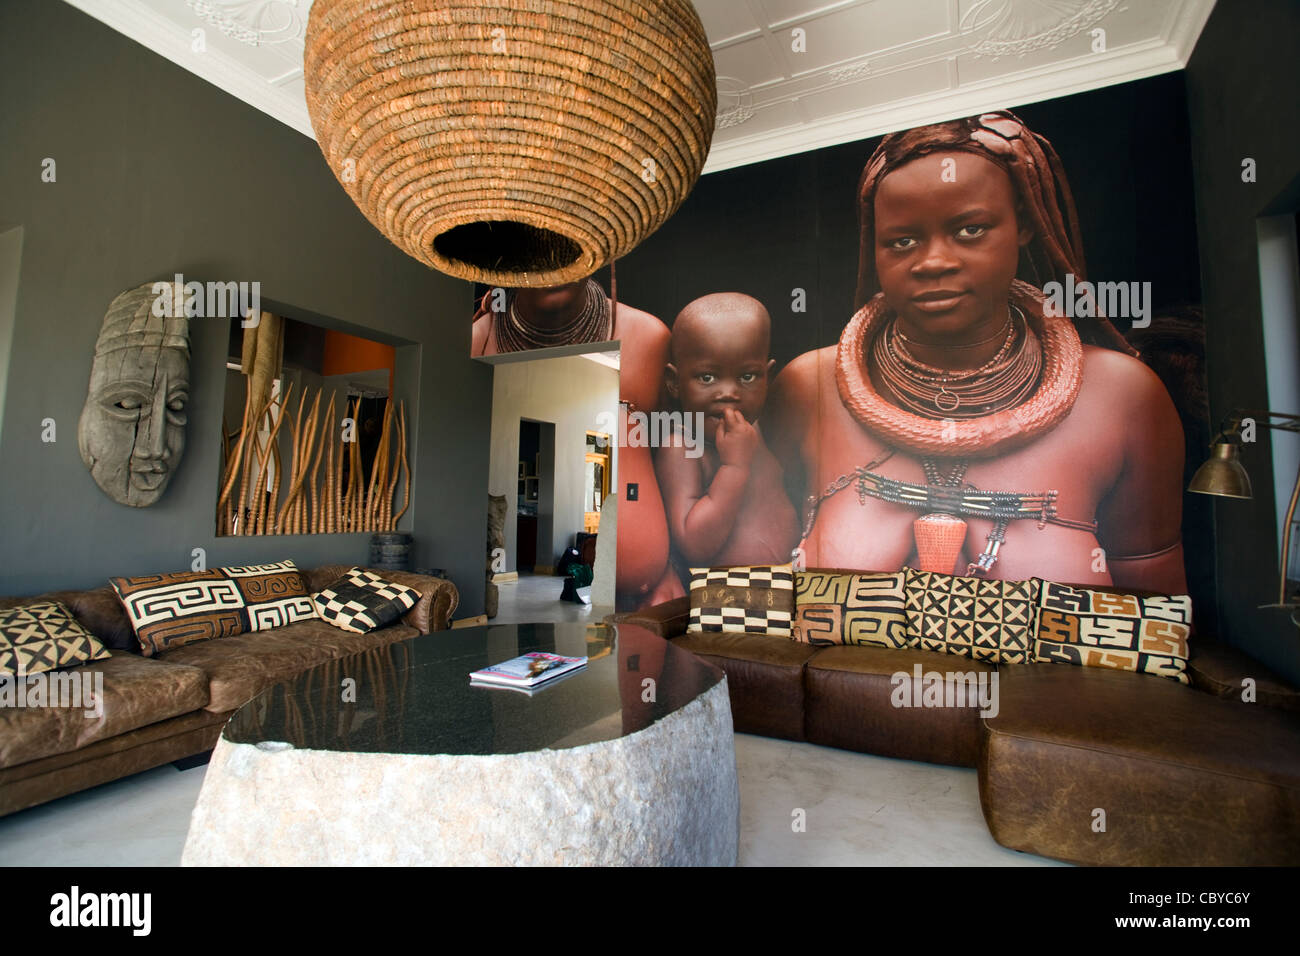 The Olive Boutique Hotel - Windhoek, Namibia - Stock Image